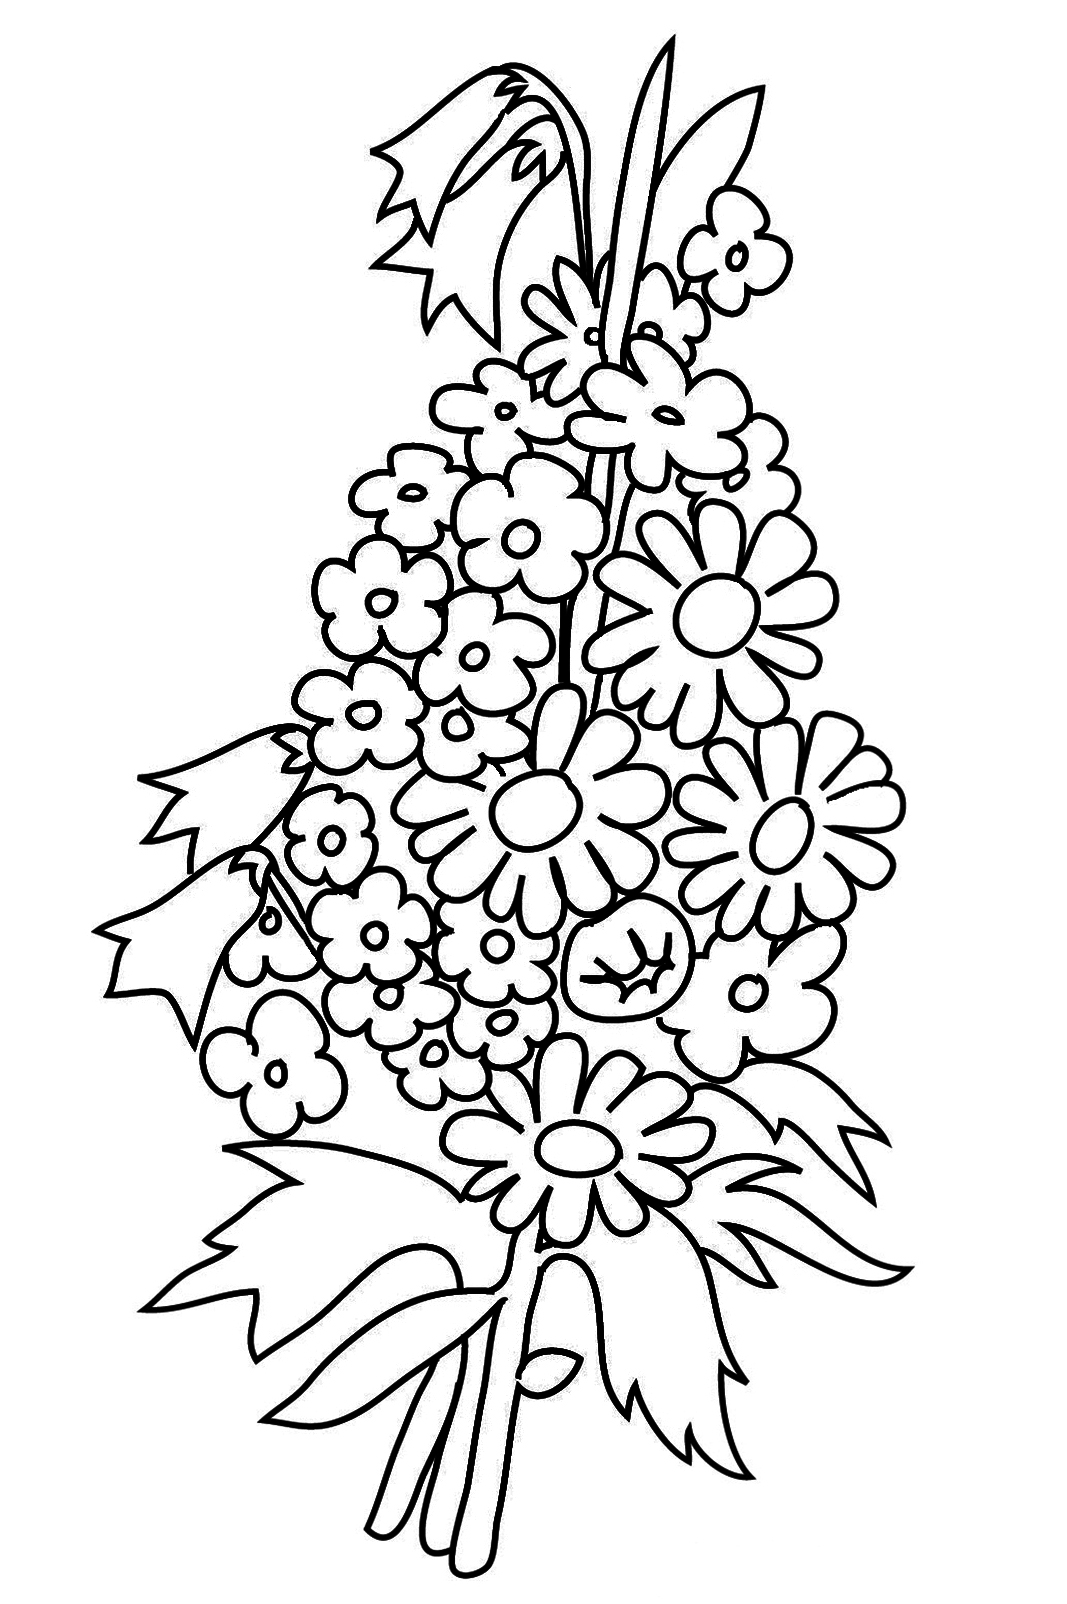 coloring flower flower coloring pages coloring flower 1 1